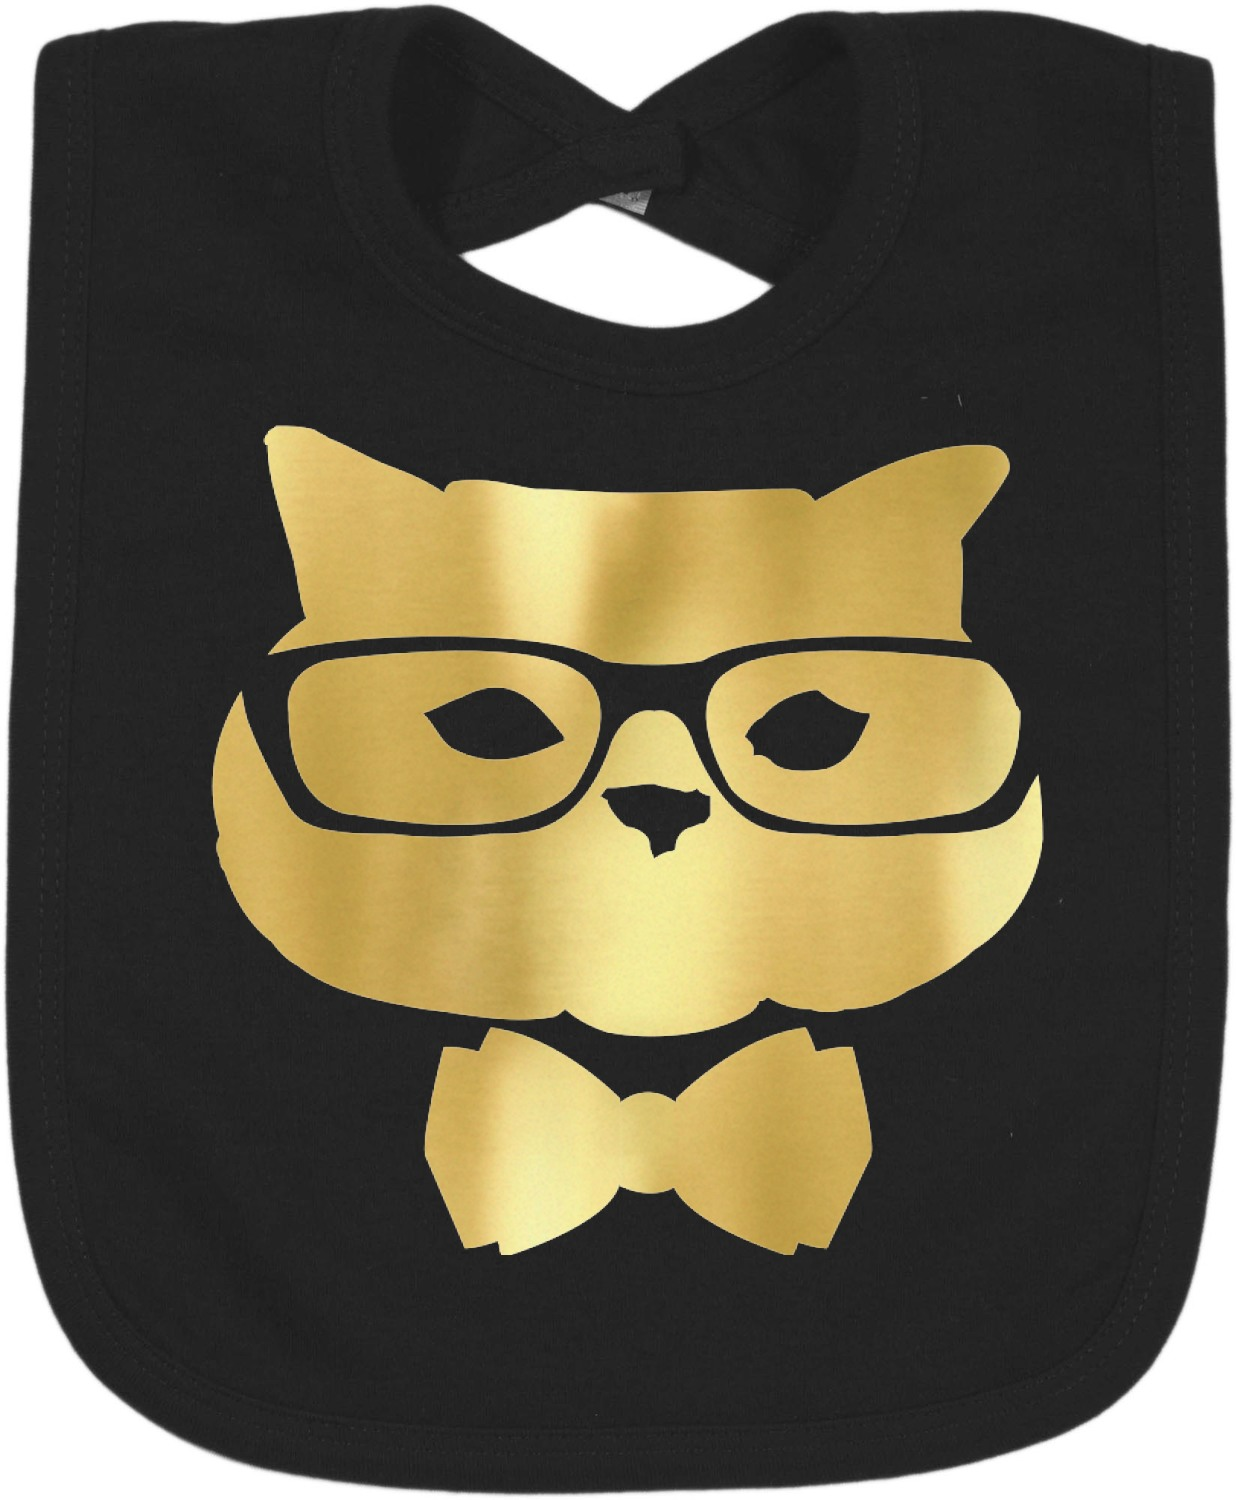 hipster cats foil toddler bibs select foil color. Black Bedroom Furniture Sets. Home Design Ideas